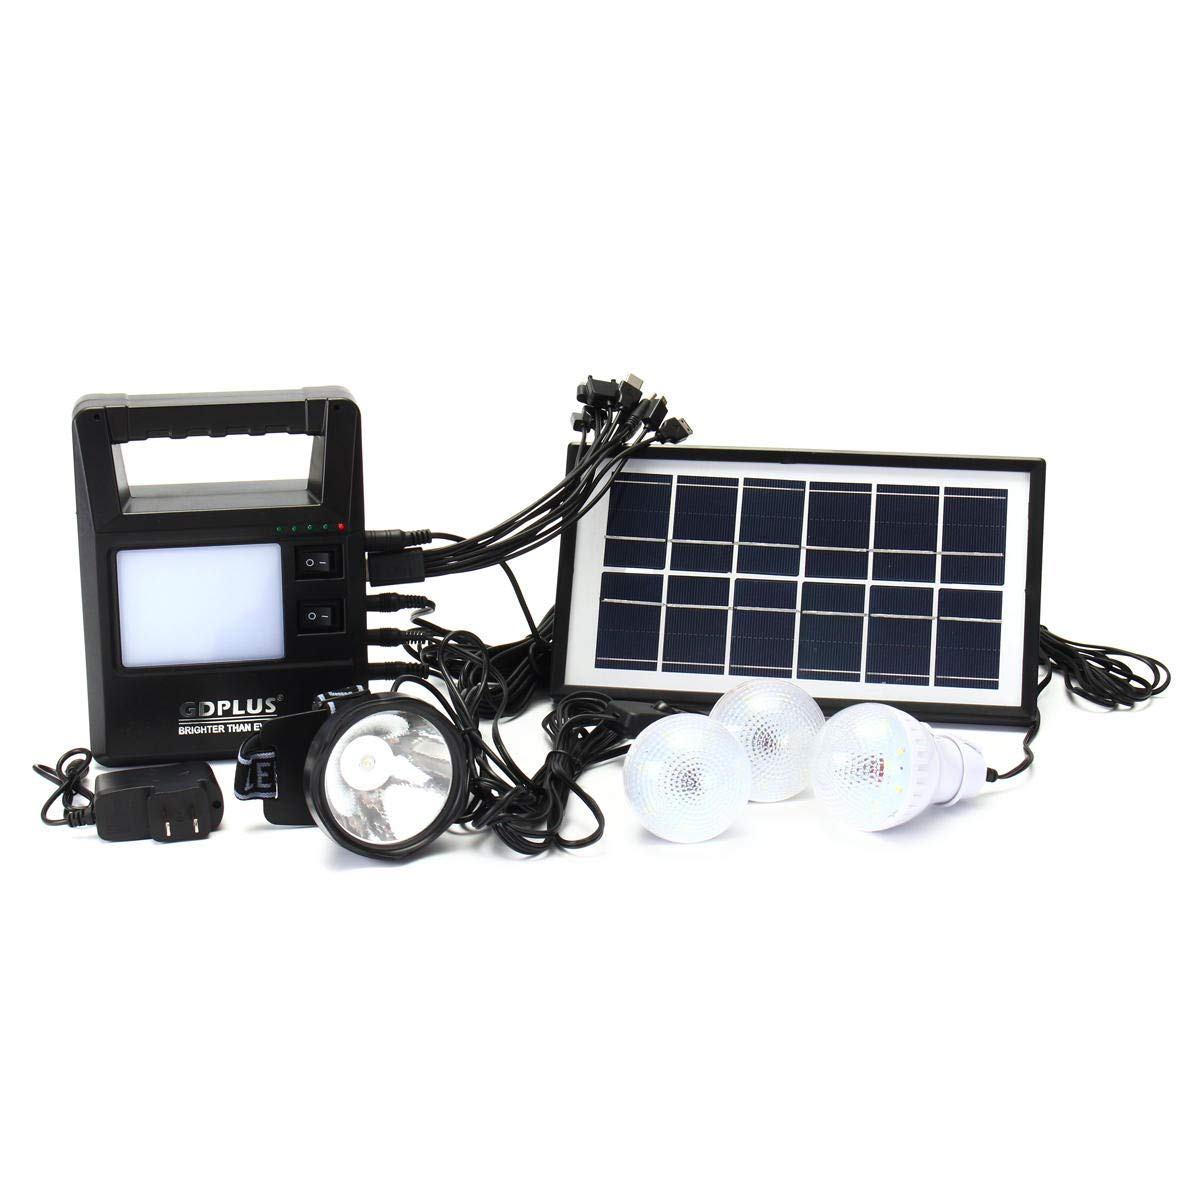 Anddoa Portable Solar Panel Generator Charging Solar Powered System Home Generator System Kit